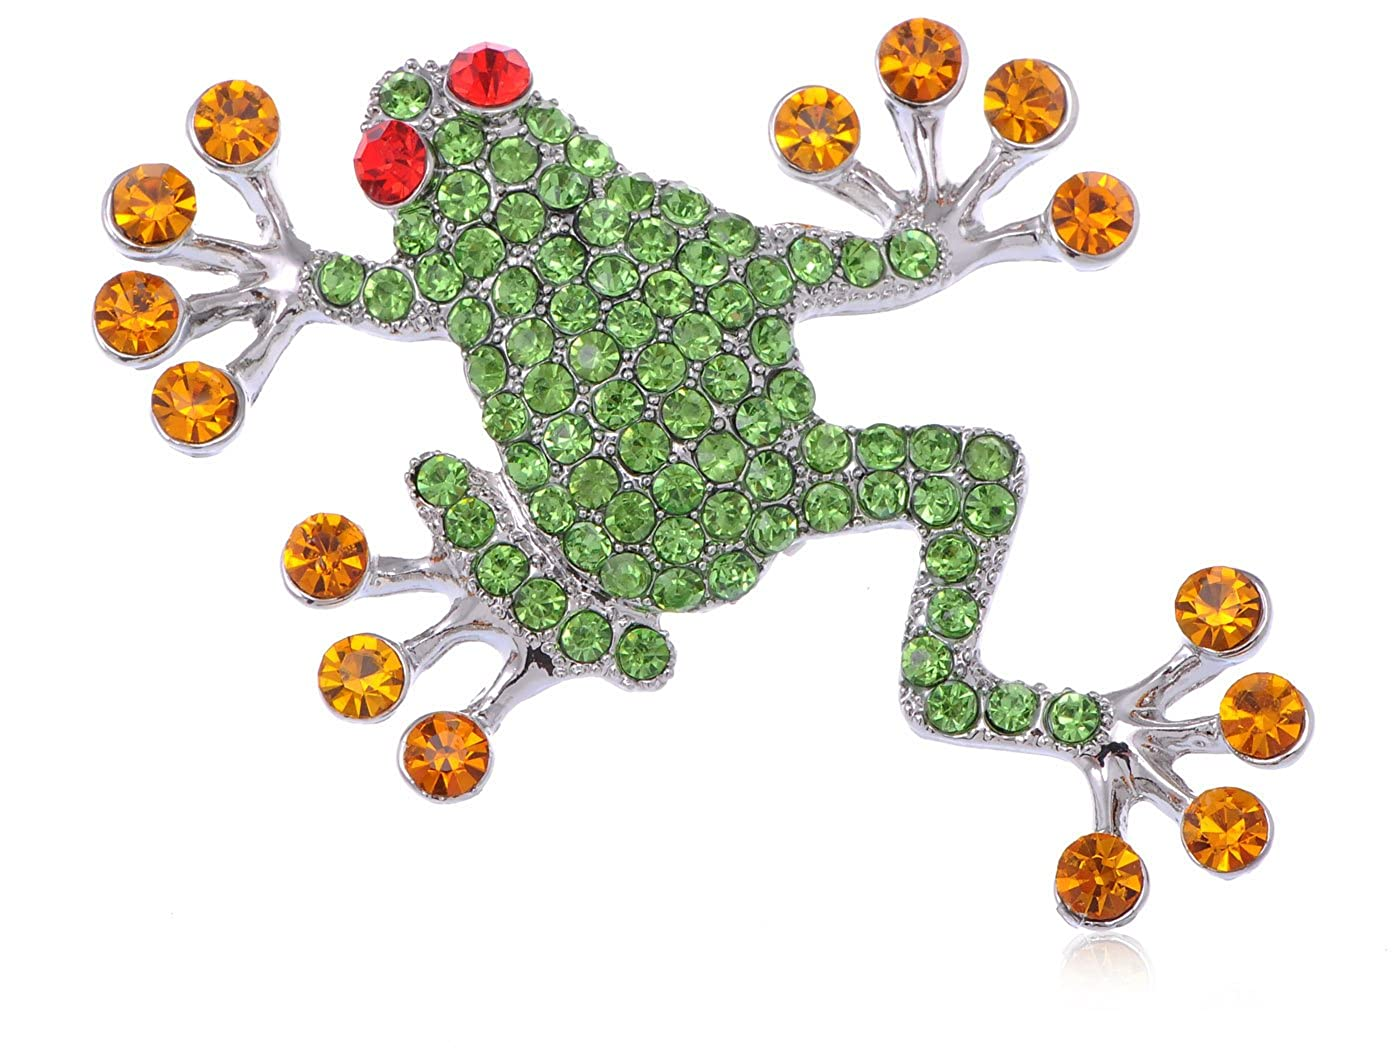 1940s Costume Jewelry: Necklaces, Earrings, Brooch, Bracelets Alilang Synthetic Peridot Crystal Rhinestone Synthetic Ruby Eyed Frog Fashion Jewelry Brooch Pin $8.99 AT vintagedancer.com